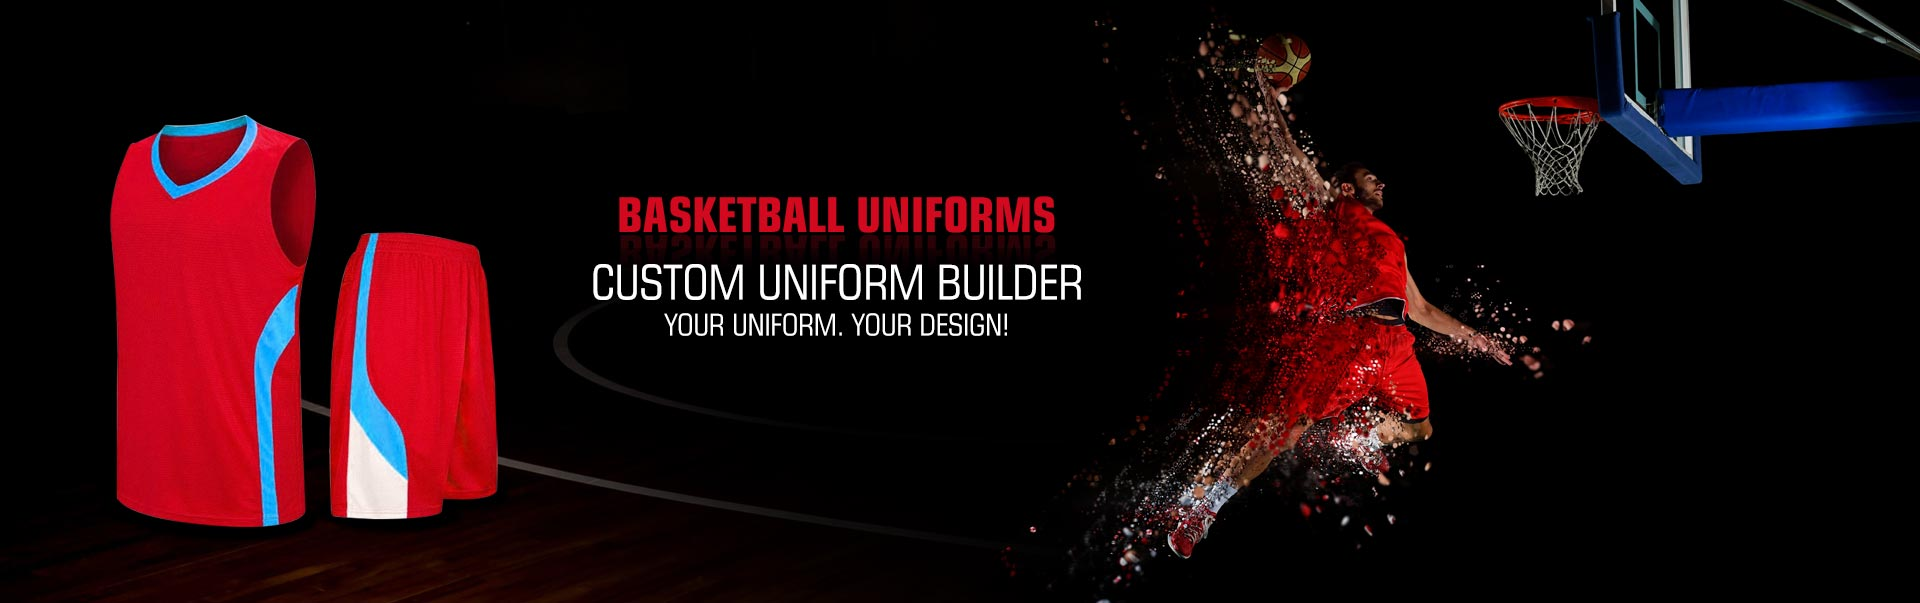 Basketball Uniforms Wholesaler, Suppliers in Erin